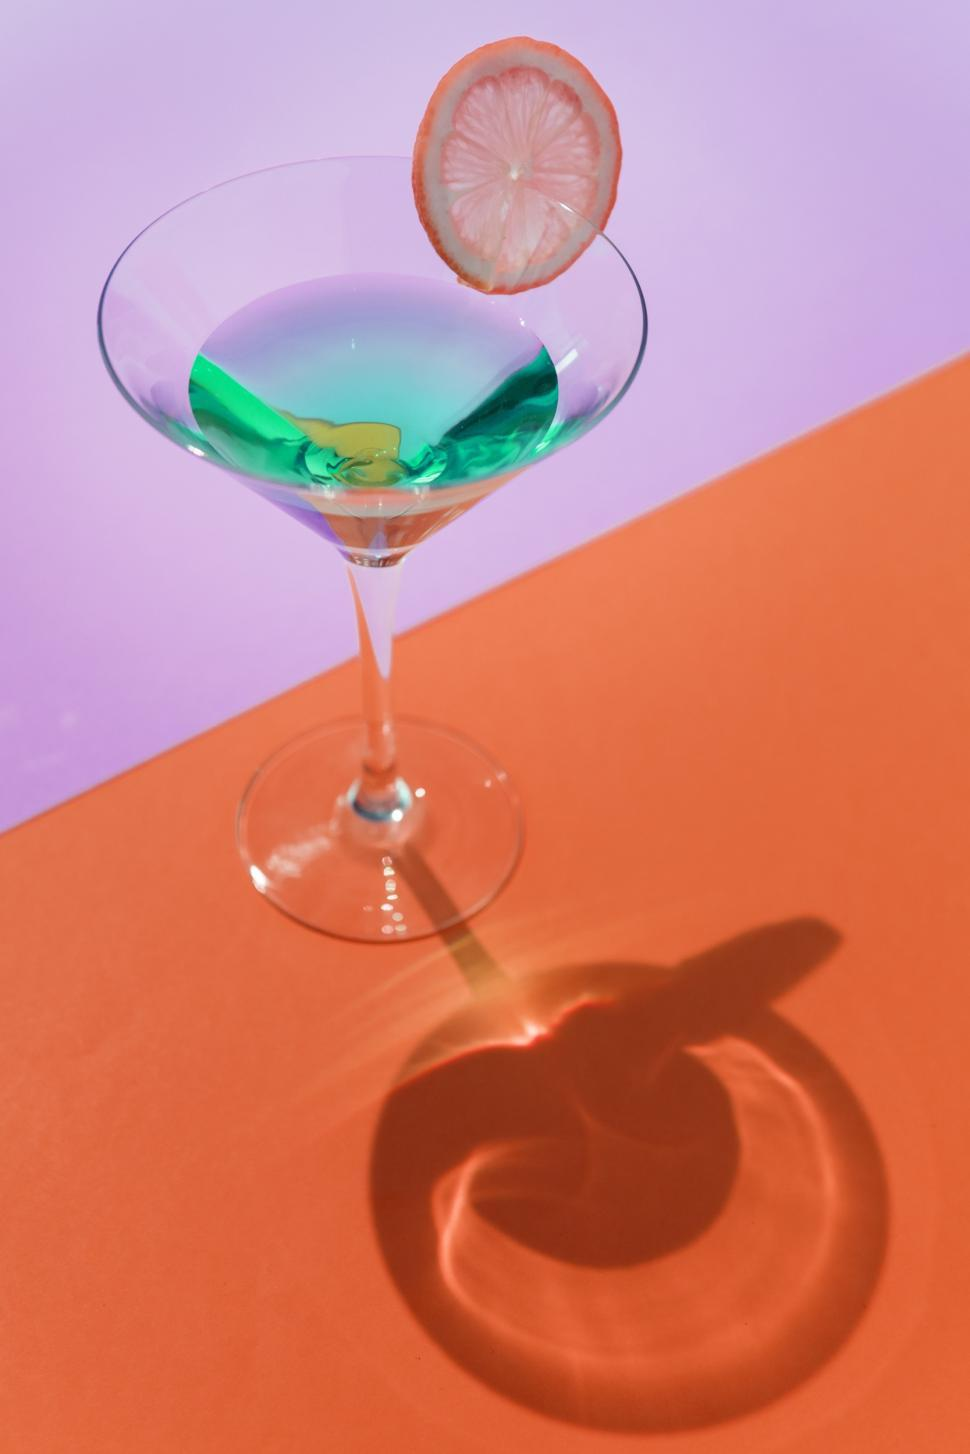 Download Free Stock HD Photo of Close up of a glass of martini on colorful background Online